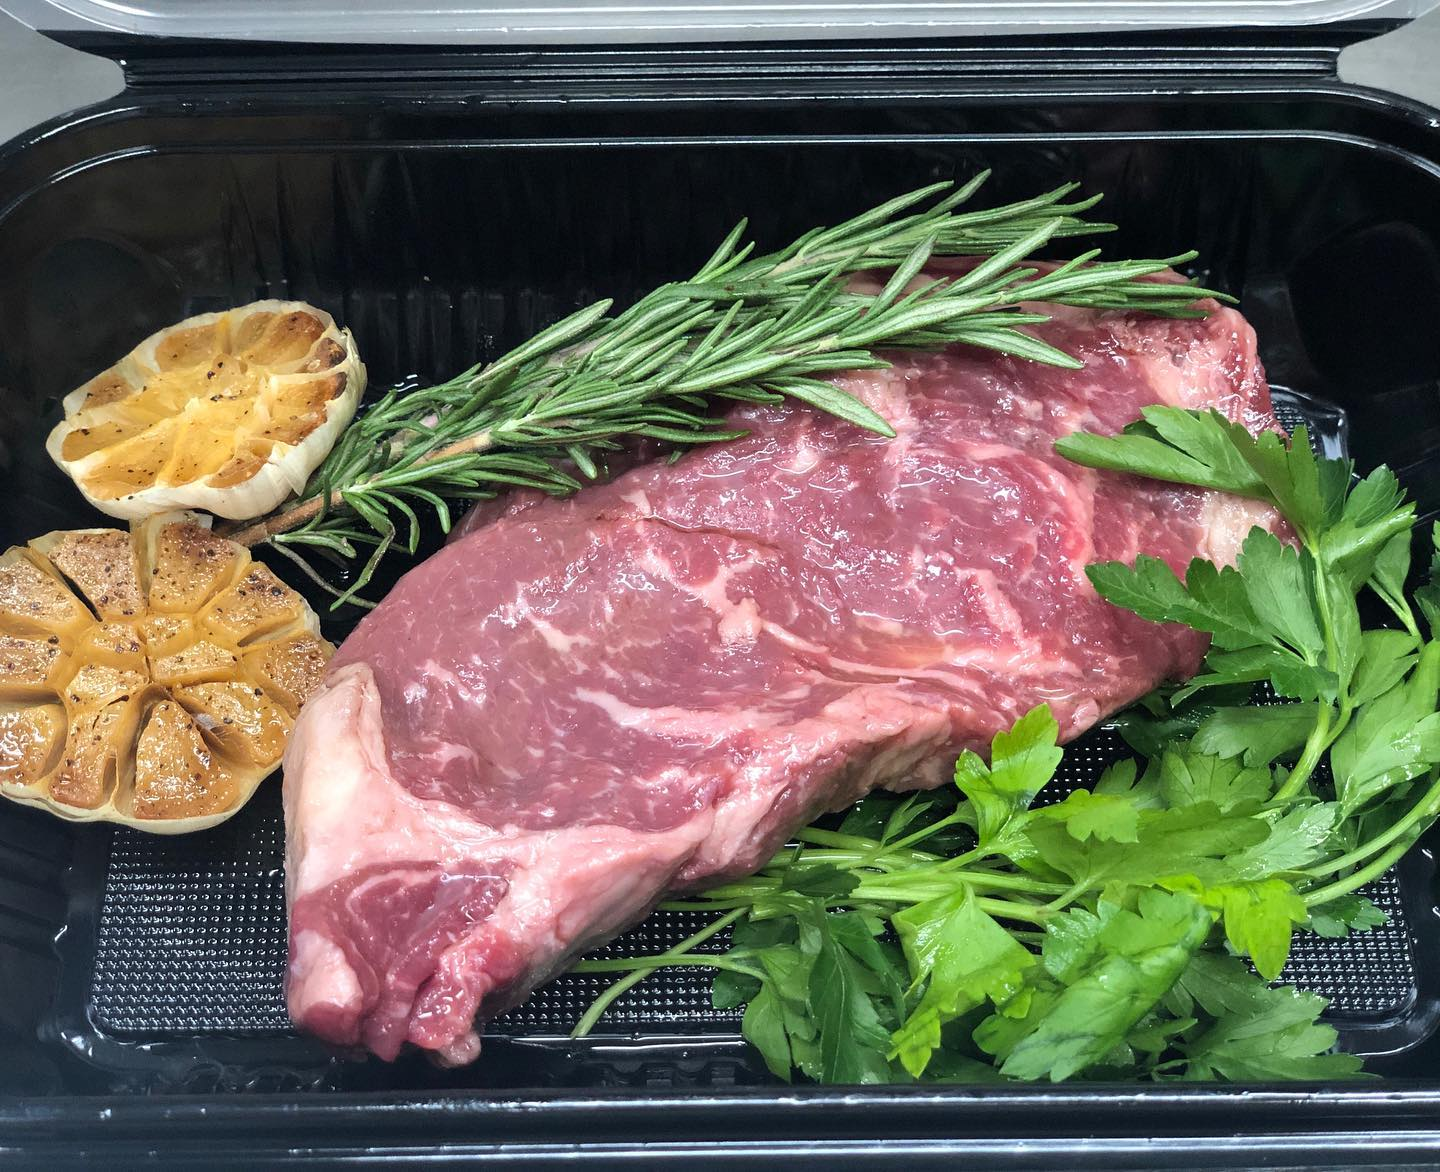 a raw steak surrounded by garlic cloves and rosemary